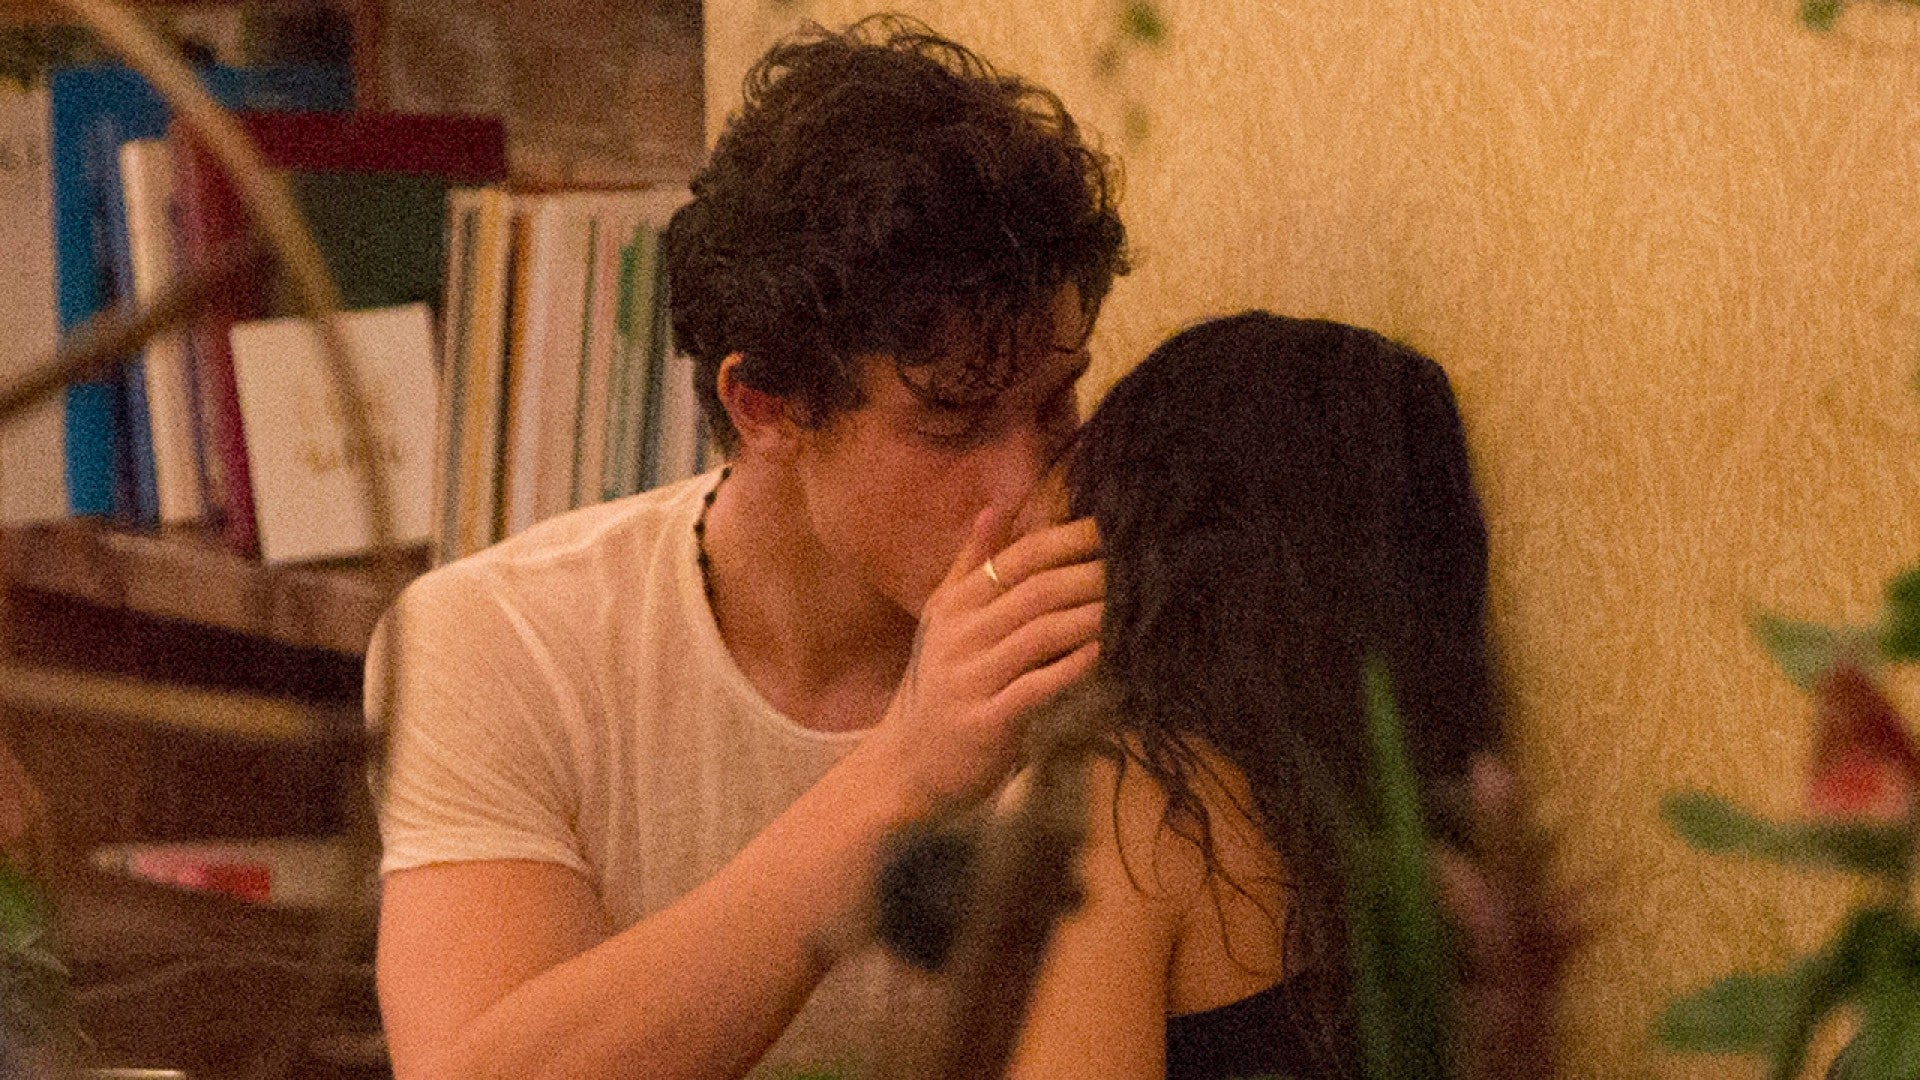 Camila Cabello and Shawn Mendes Share a Kiss During Date in ...